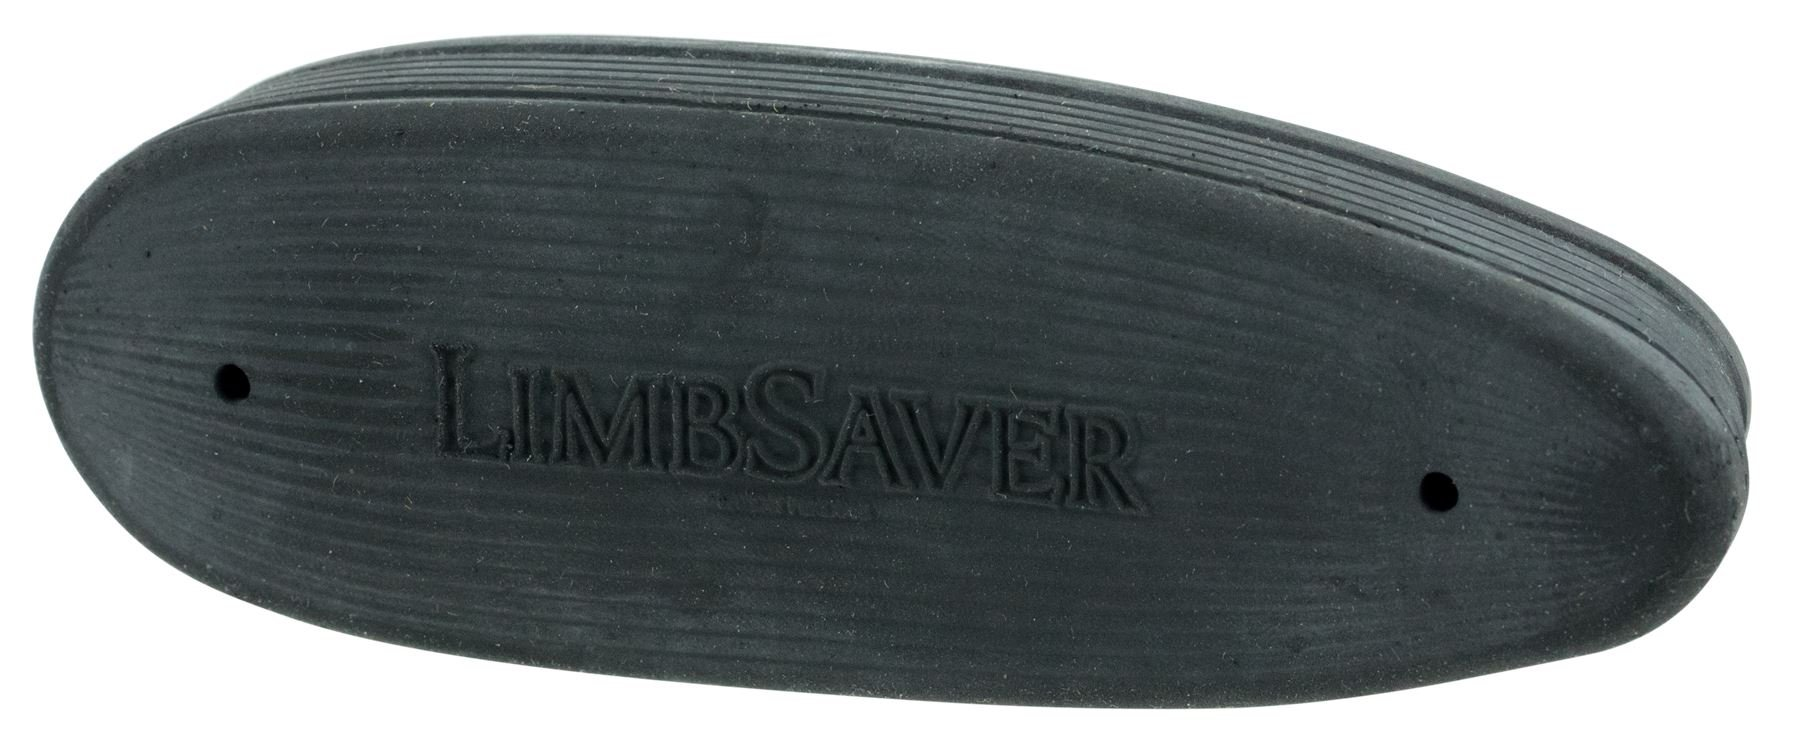 Sims Vibration Laboratories LimbSaver Pre-Fit Recoil Pad Beretta with 5.375 Inch 10701